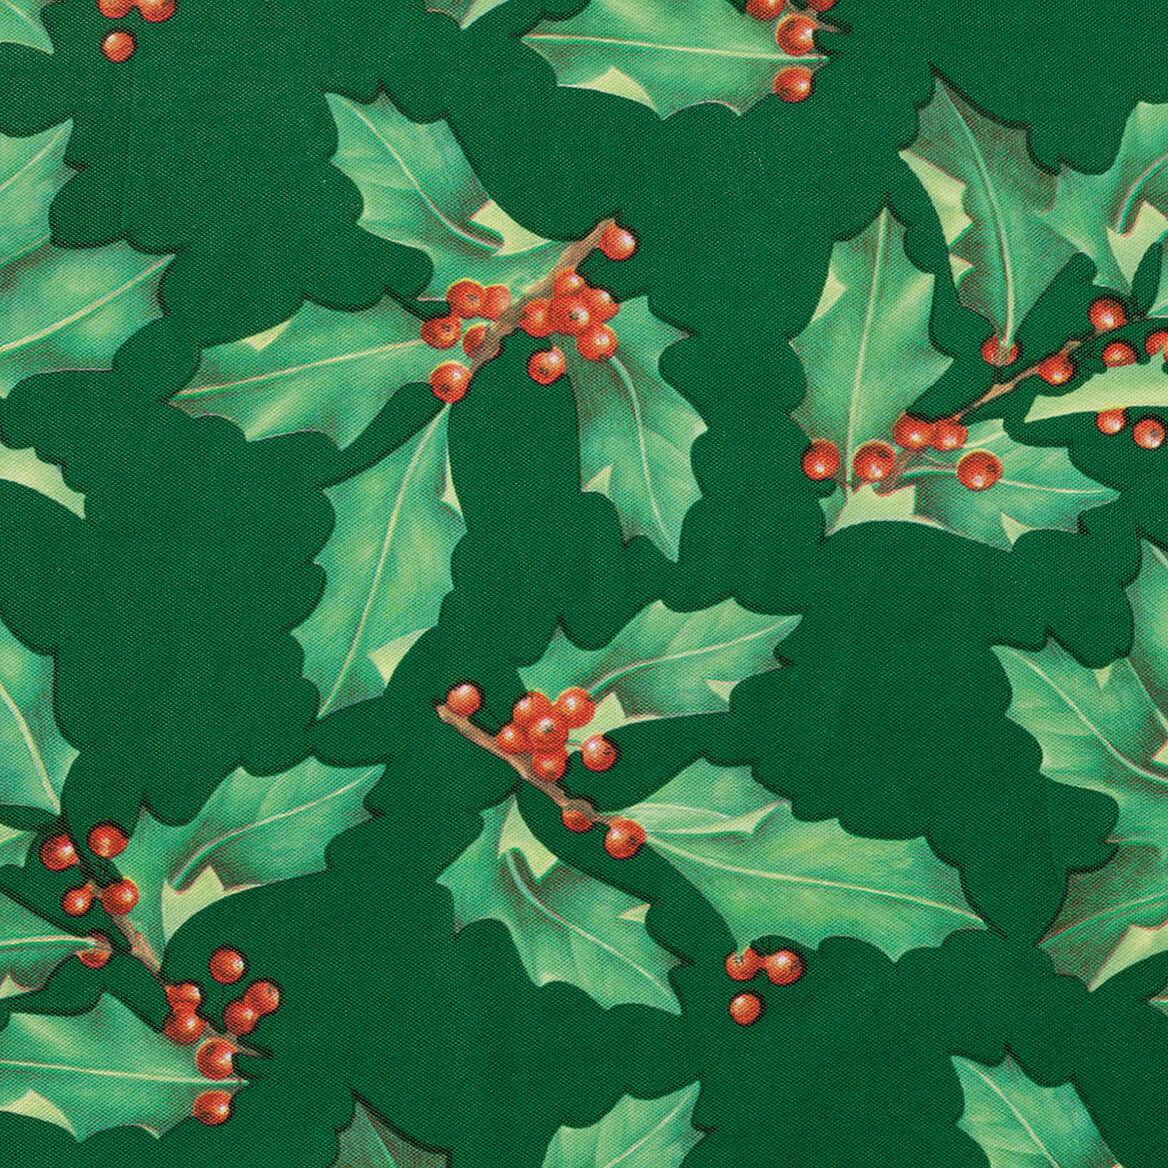 Holly Holiday Vinyl Elasticized Tablecover-370741